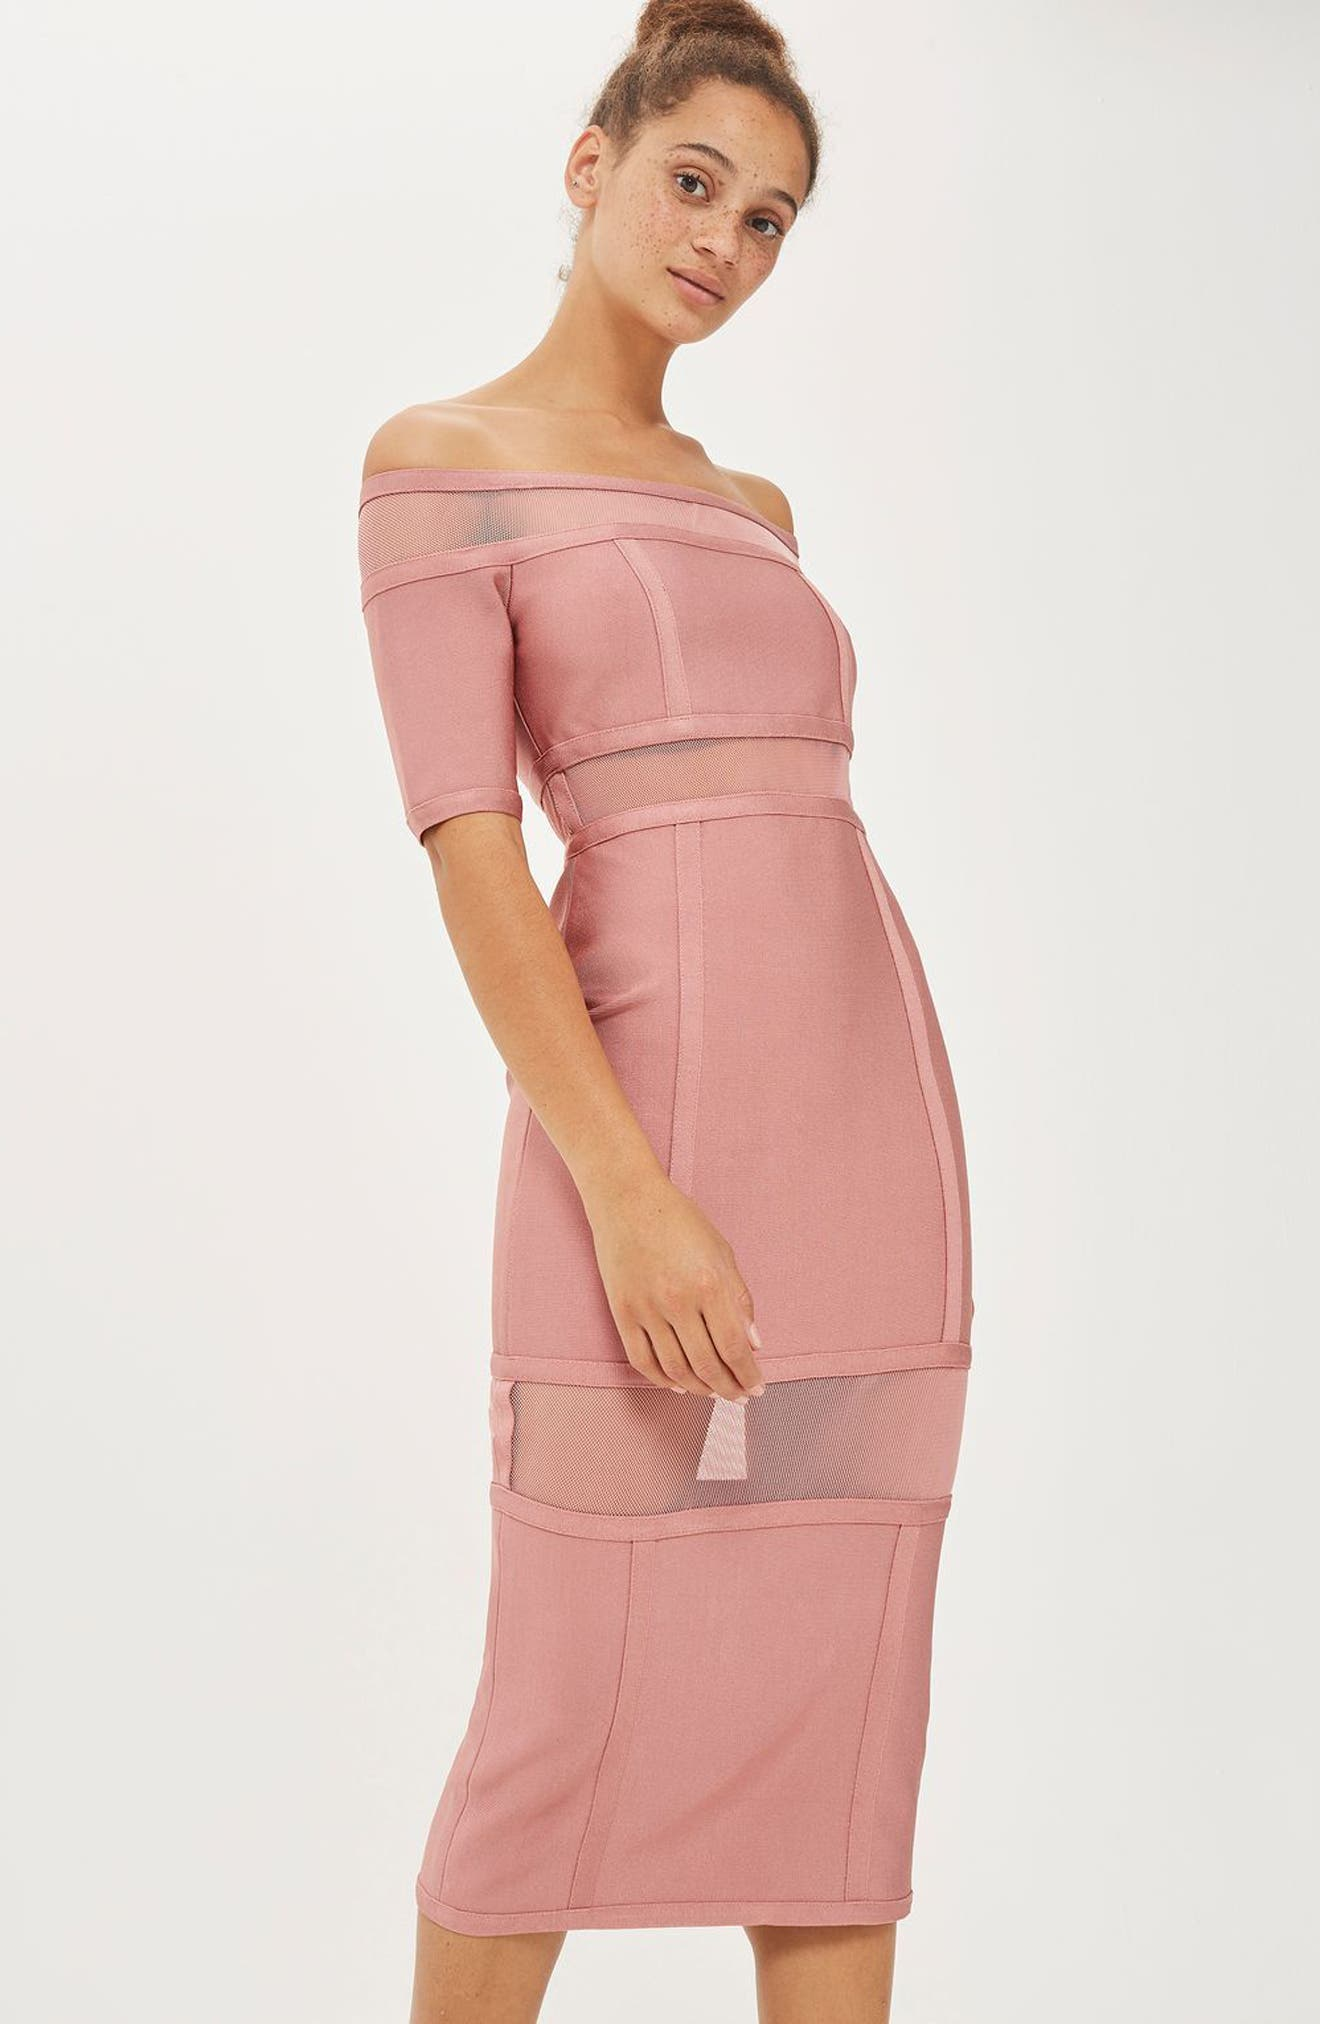 Sheer Panel Off the Shoulder Body-Con Midi Dress,                             Alternate thumbnail 4, color,                             Pink